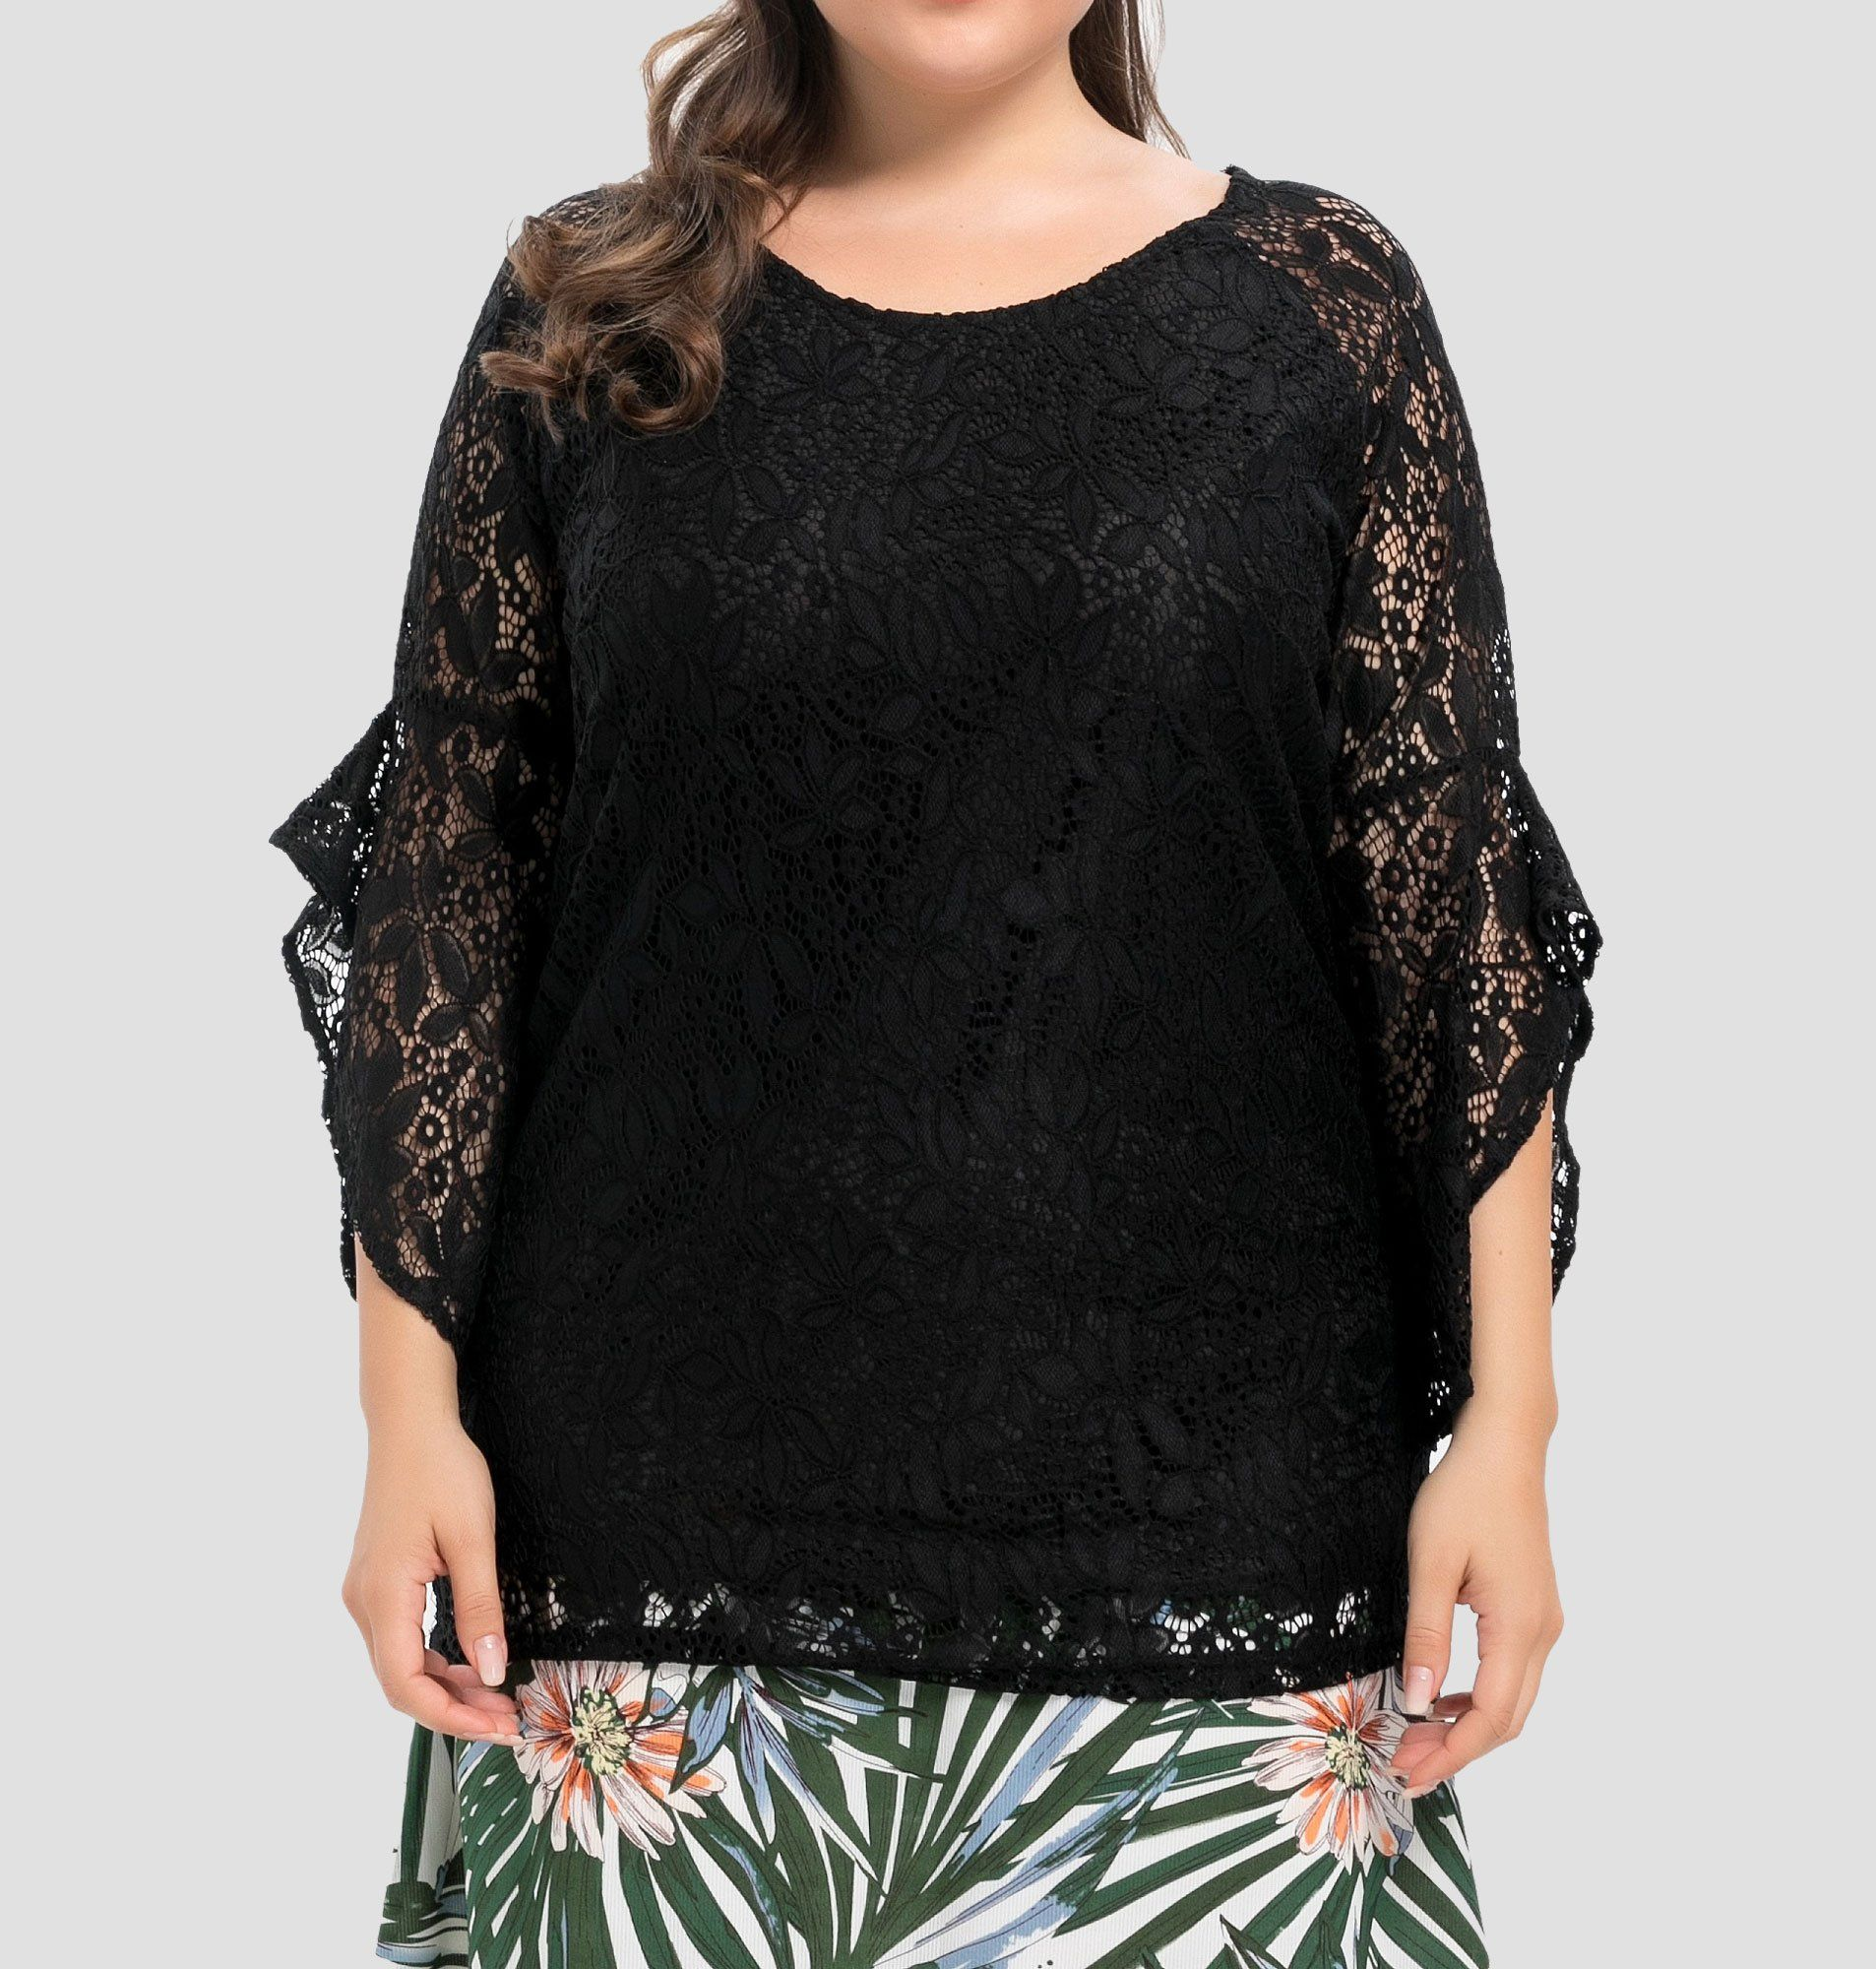 f3d86f74480 Women's Plus Size Lined Floral Lace Top Lace Tunic, Casual Party, Plus Size  Tops